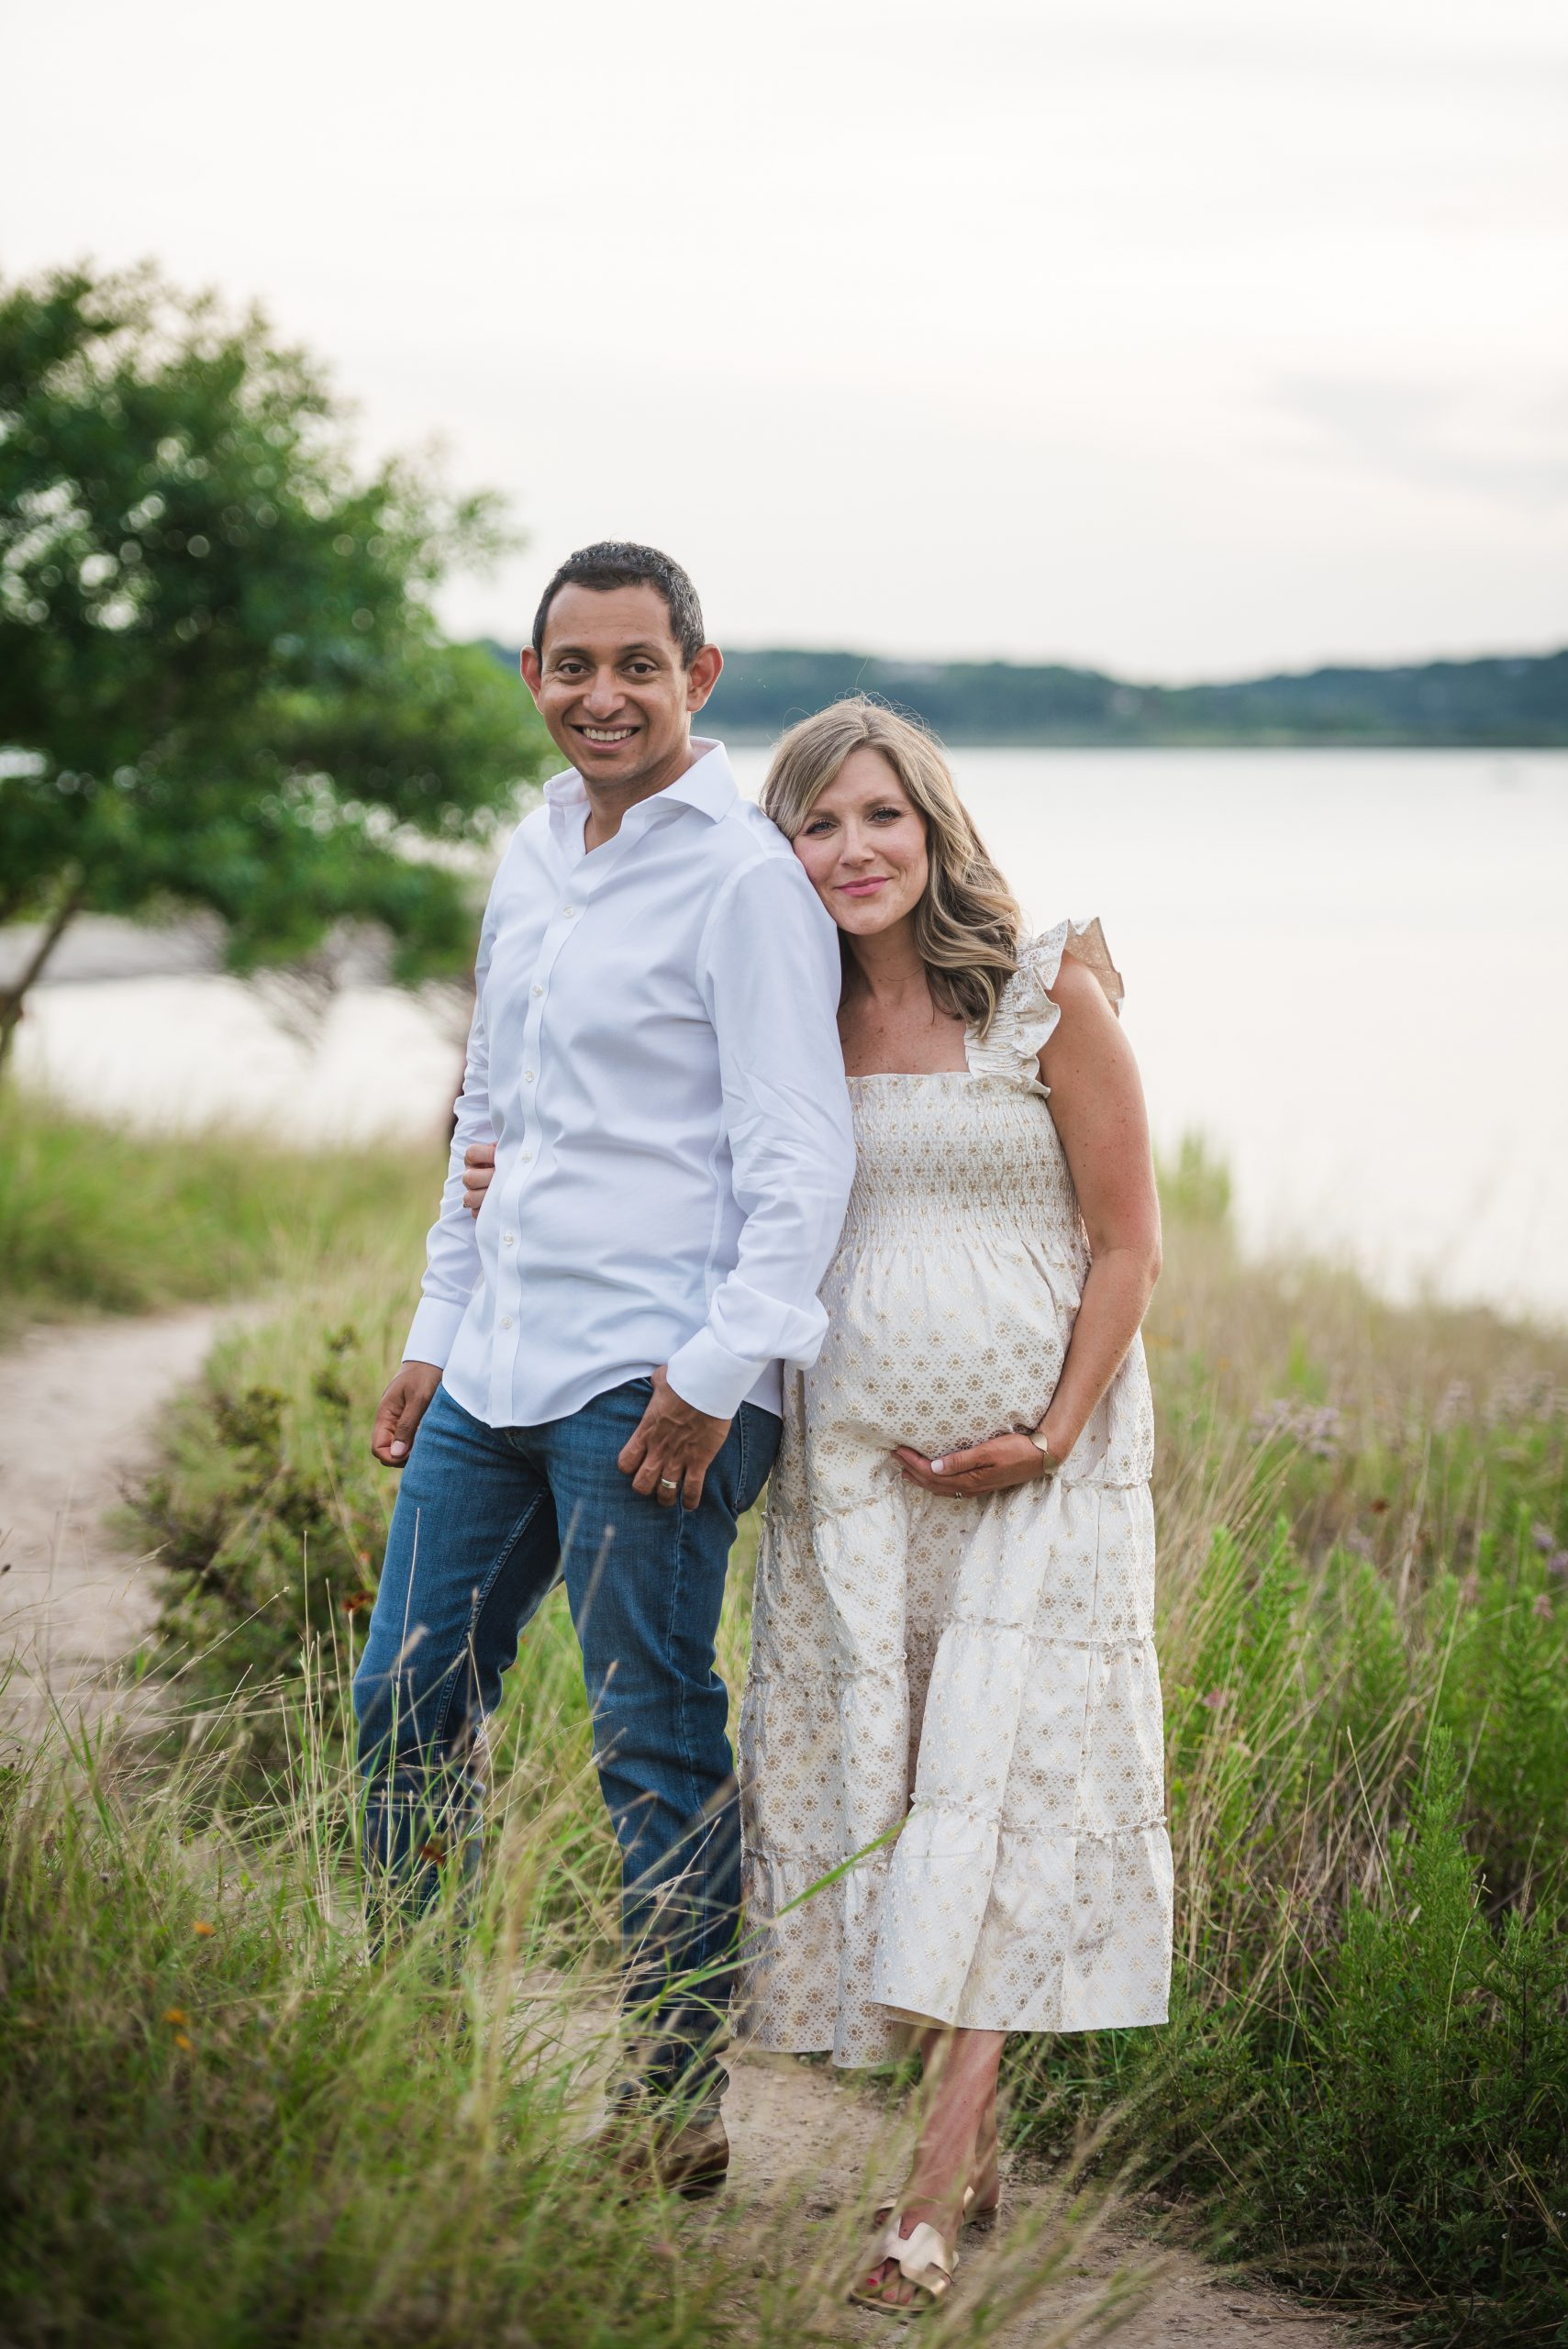 Maternity Photography Session At Canyon Lake, Texas In July Gruene Photography 26